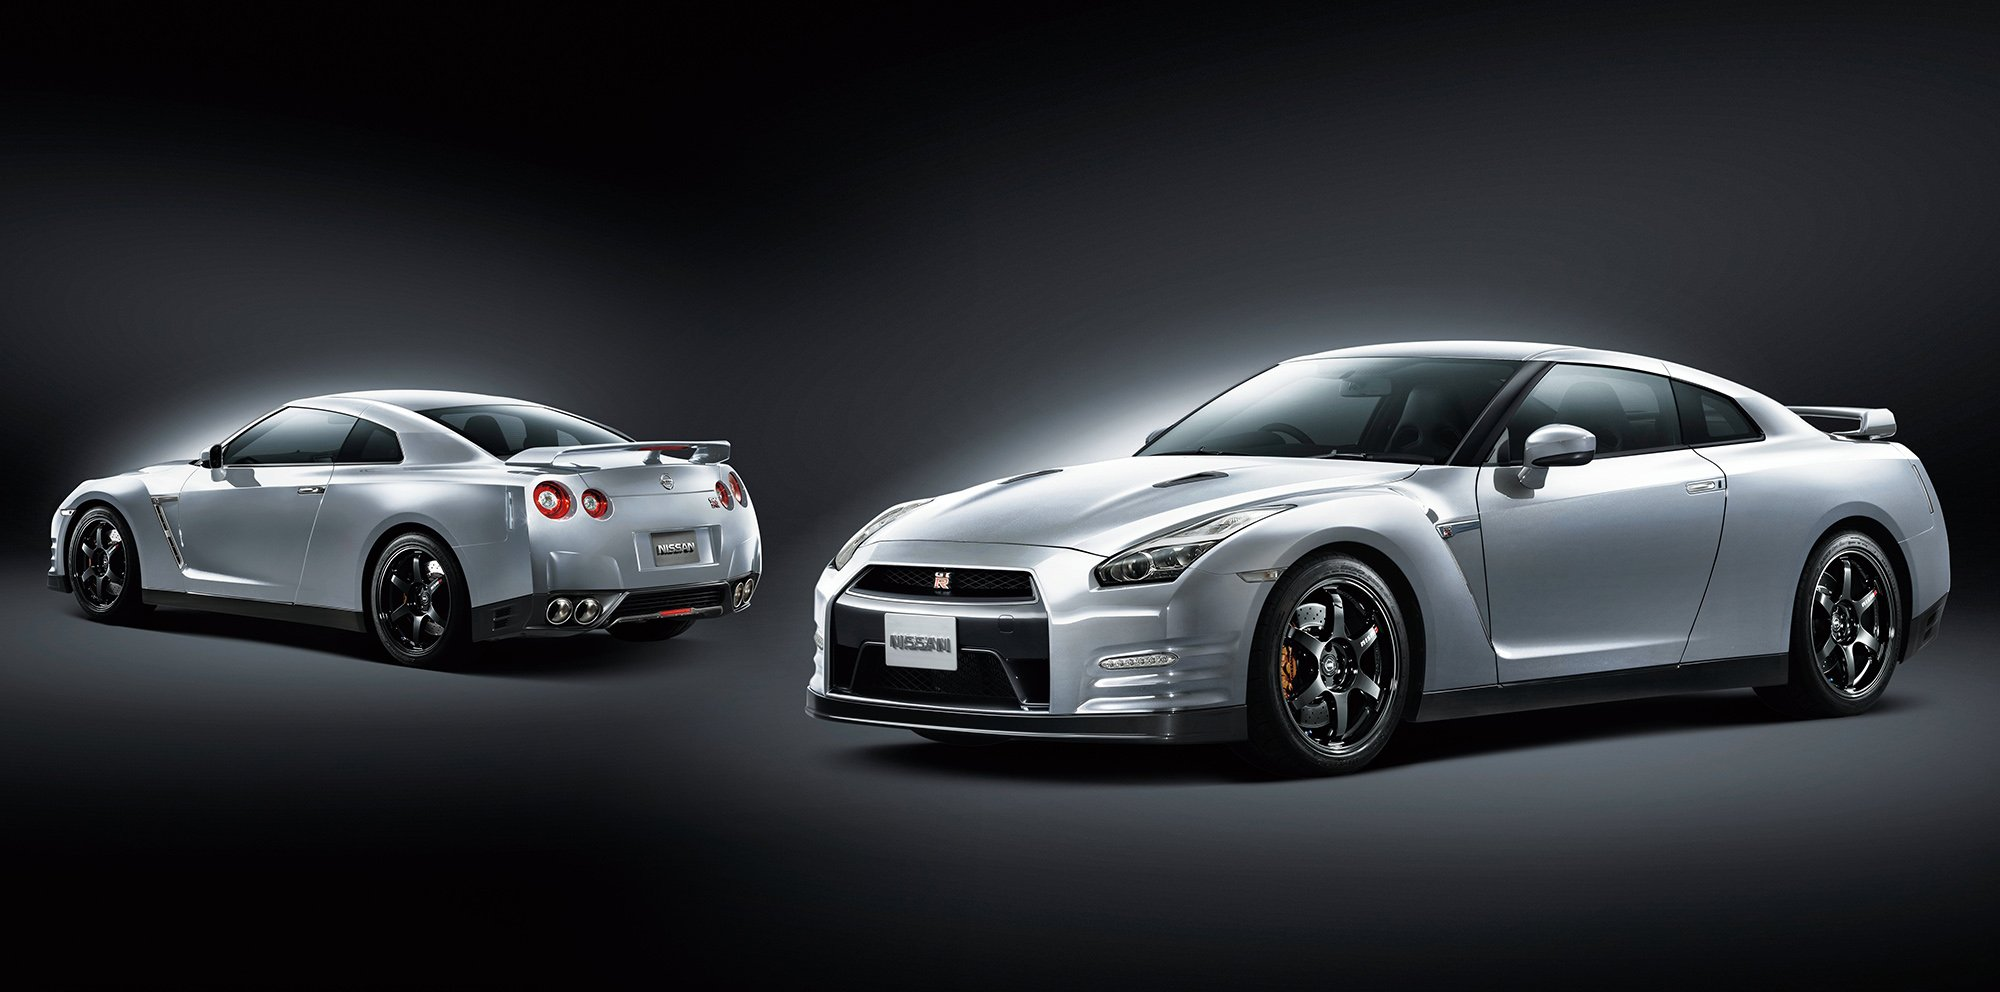 2015 nissan gt r upgrades focus on comfort track edition not coming to australia photos. Black Bedroom Furniture Sets. Home Design Ideas